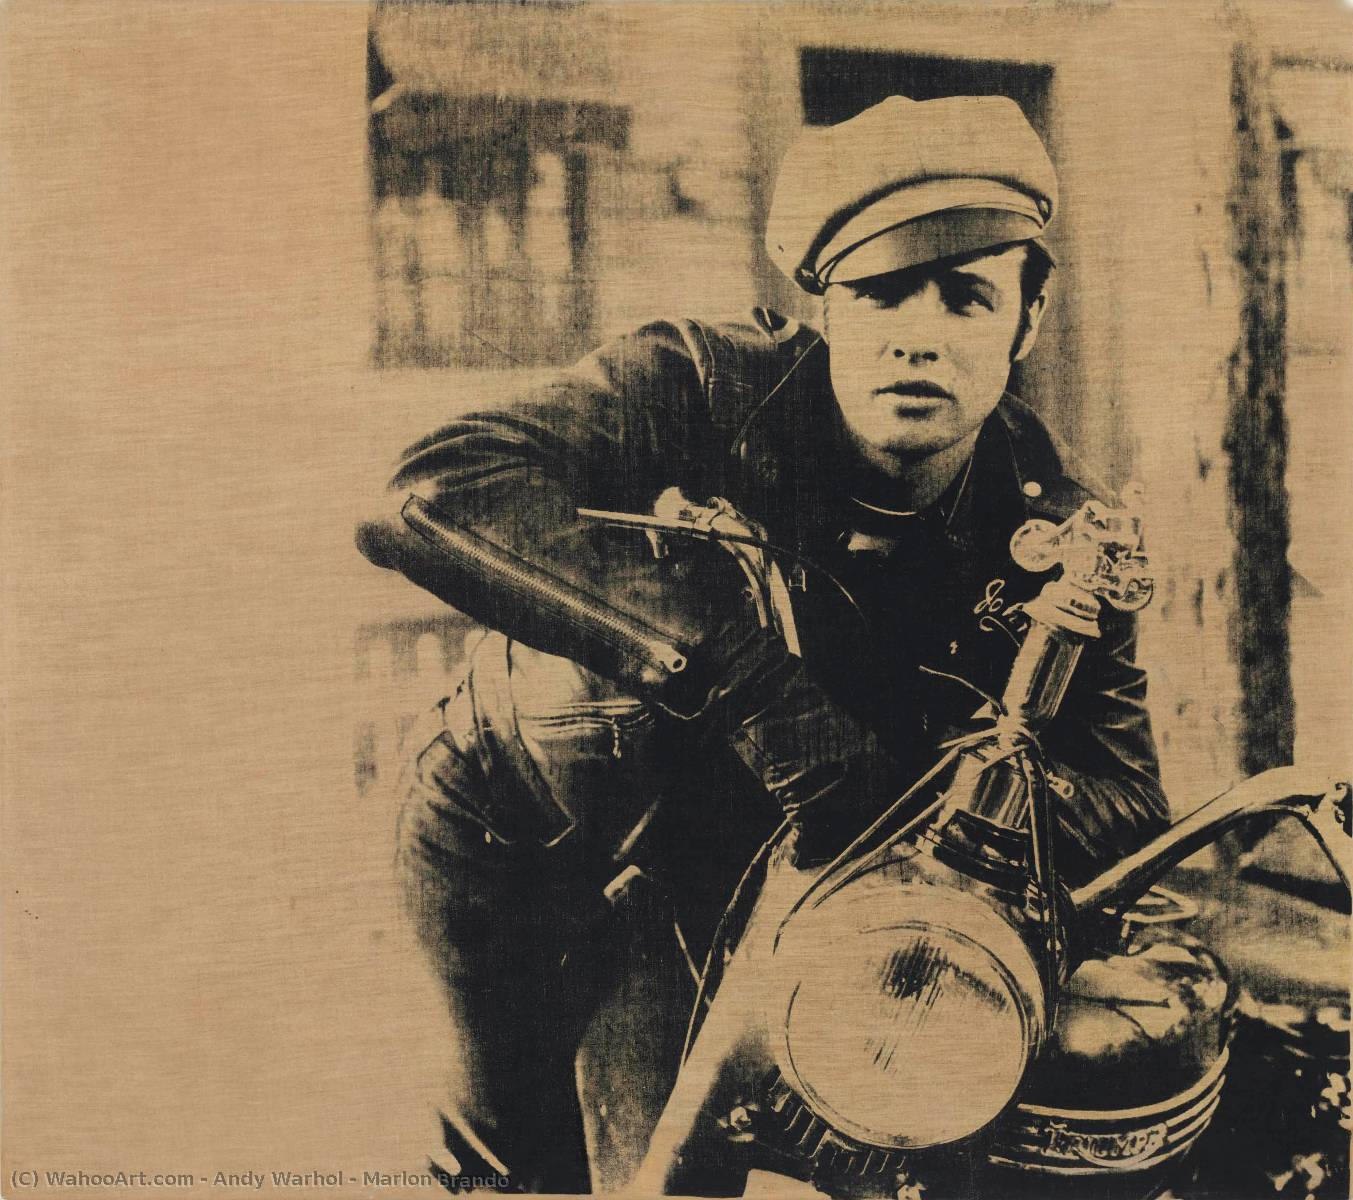 famous painting marlon brando of Andy Warhol